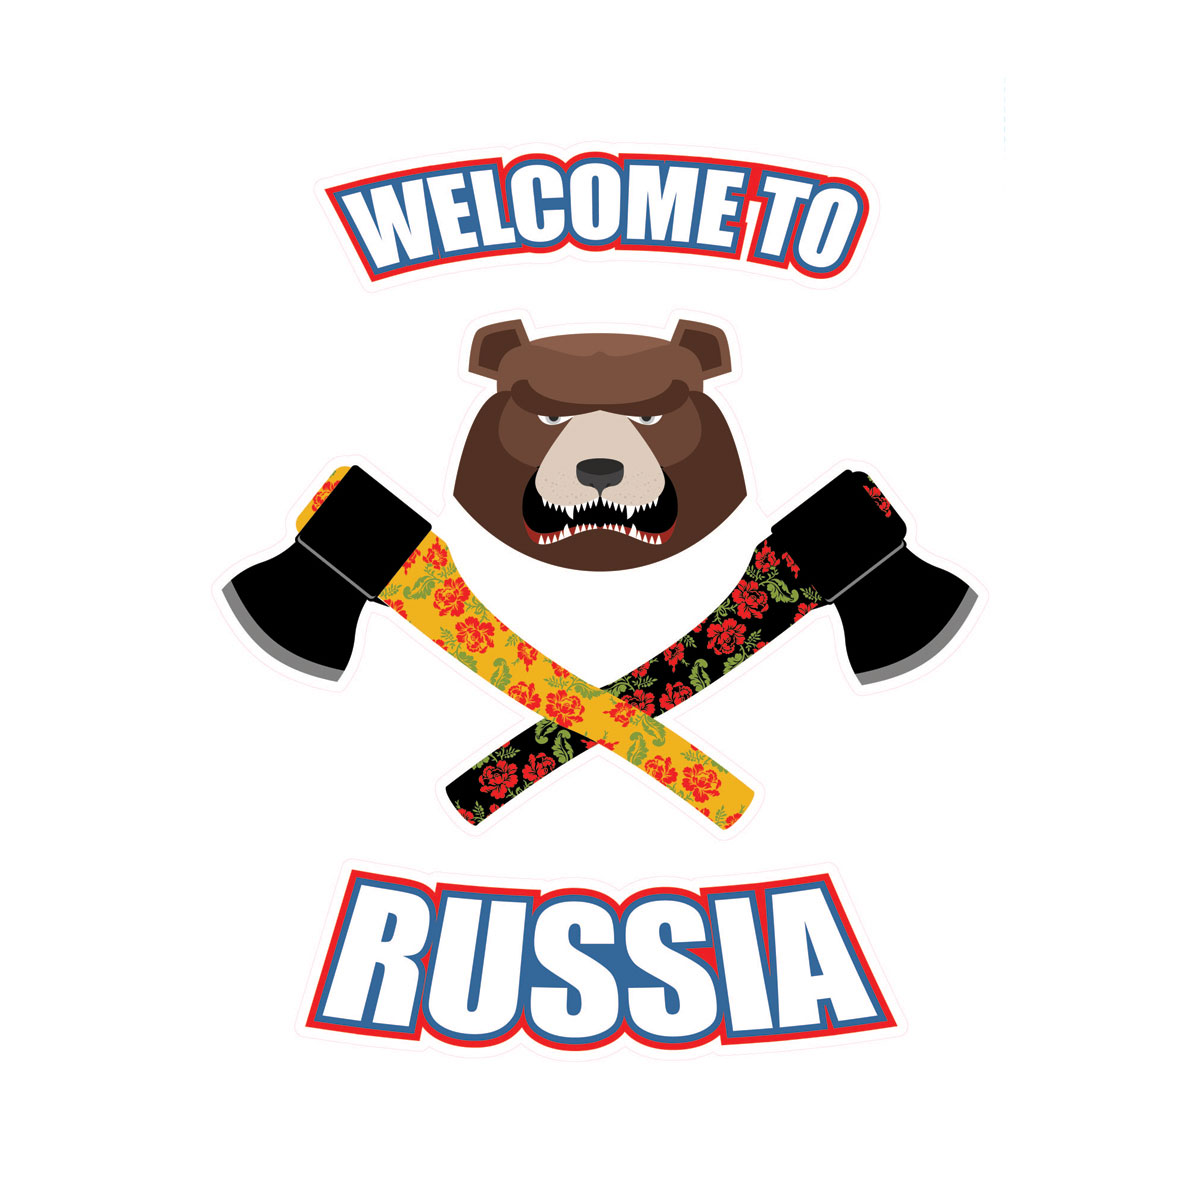 Украшение для стен и предметов интерьера Decoretto Welcome To Russia